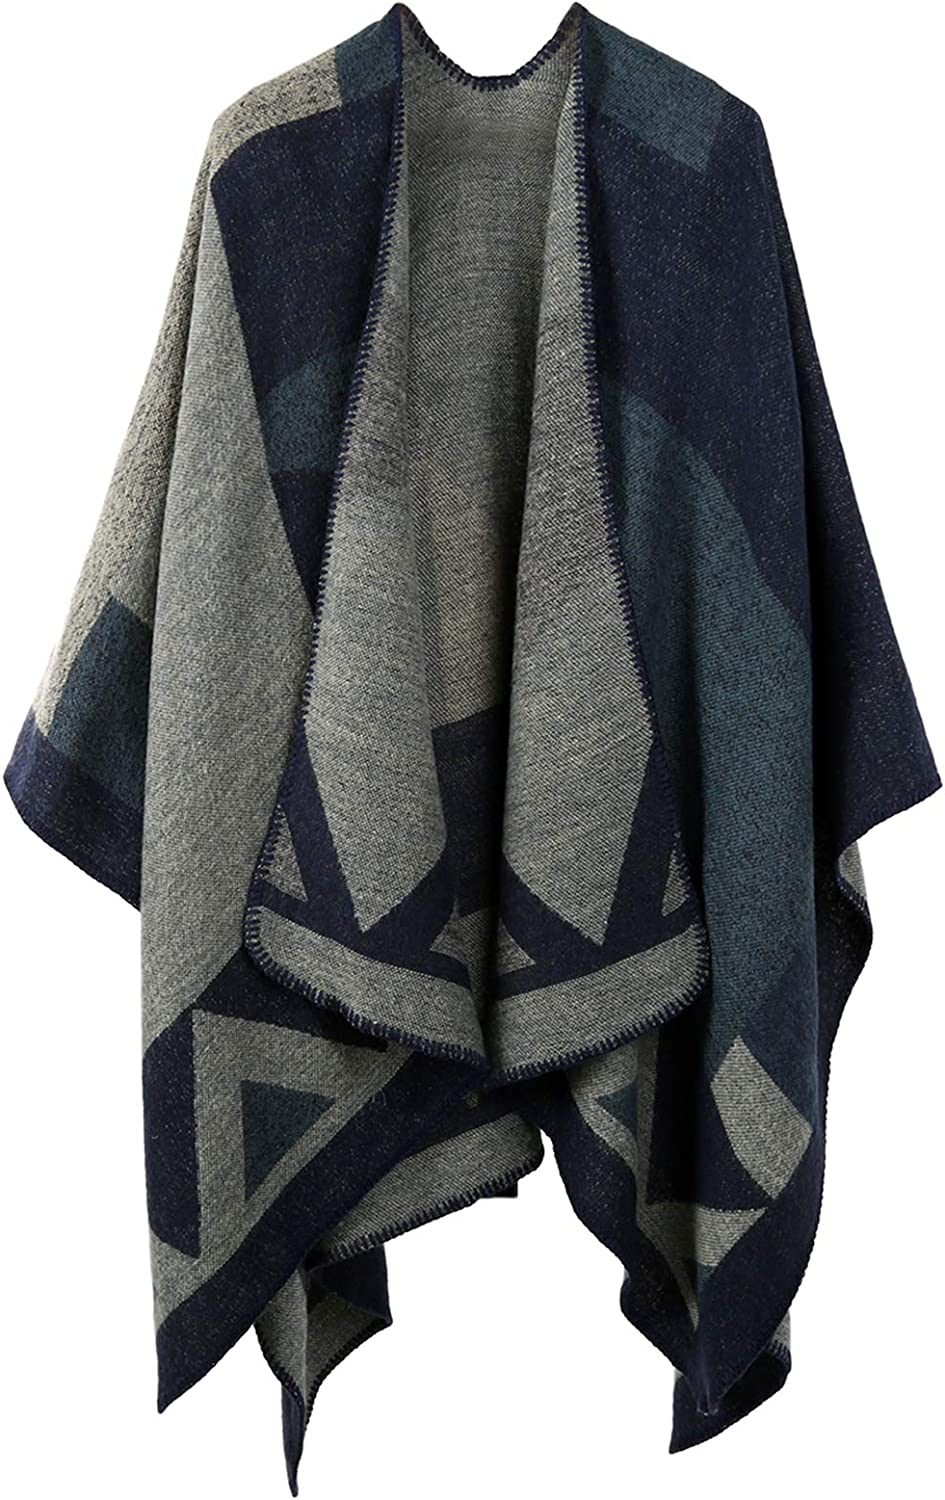 VBG VBIGER Women Winter Scarf Wrap Reversible Oversized Poncho Cape Cardigan Knitted Coat